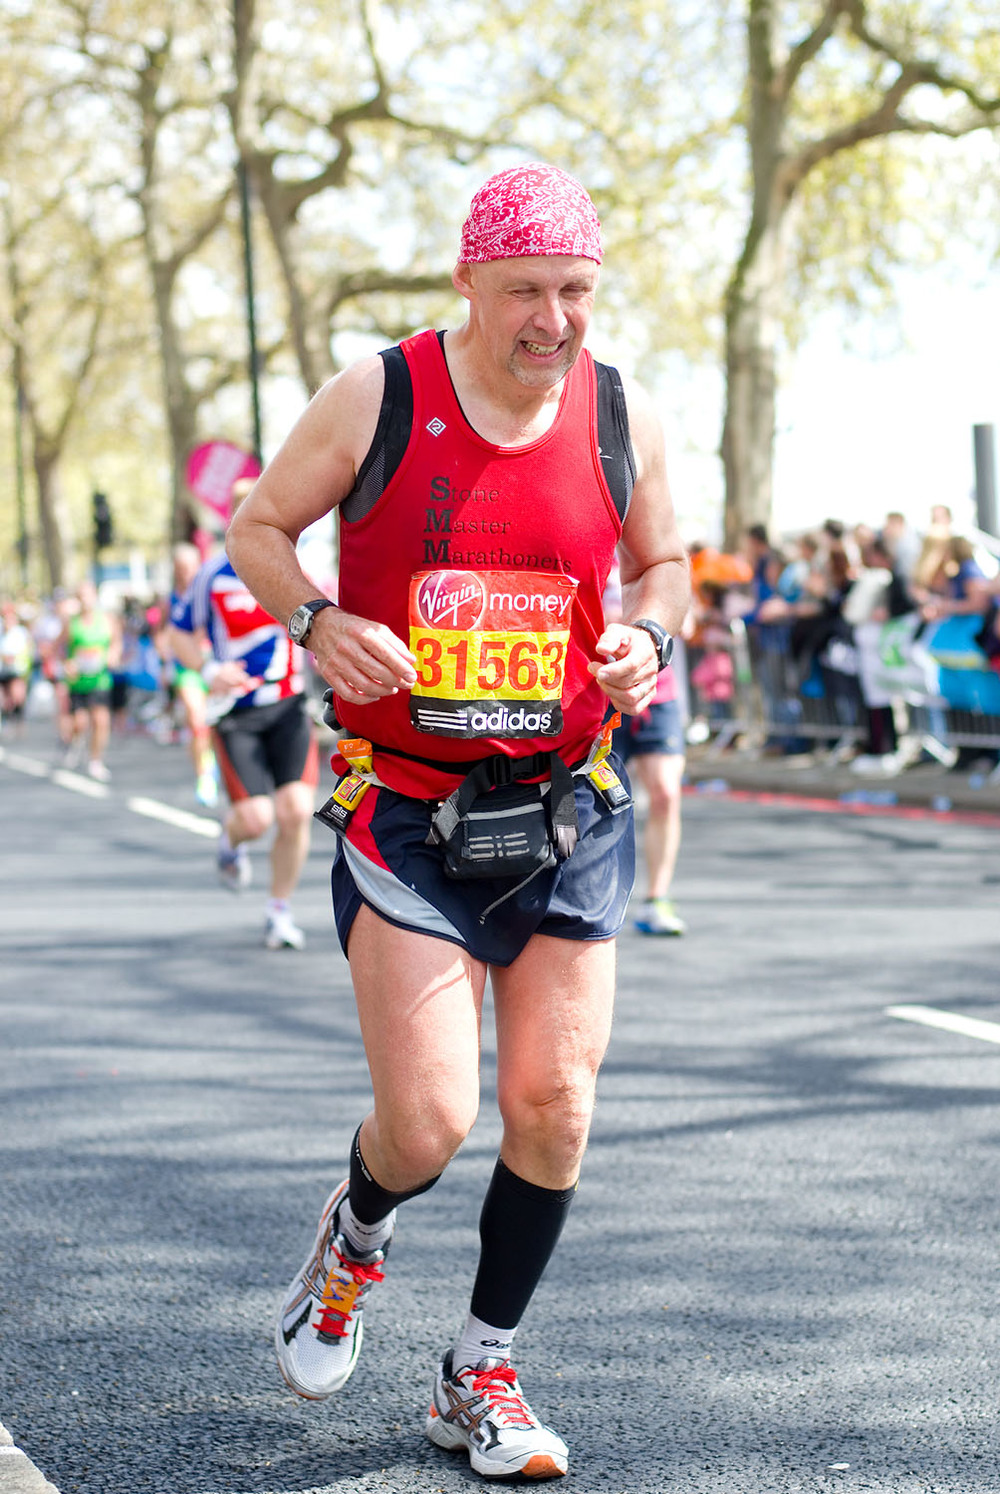 London Marathon 2012 - Mile 24.5